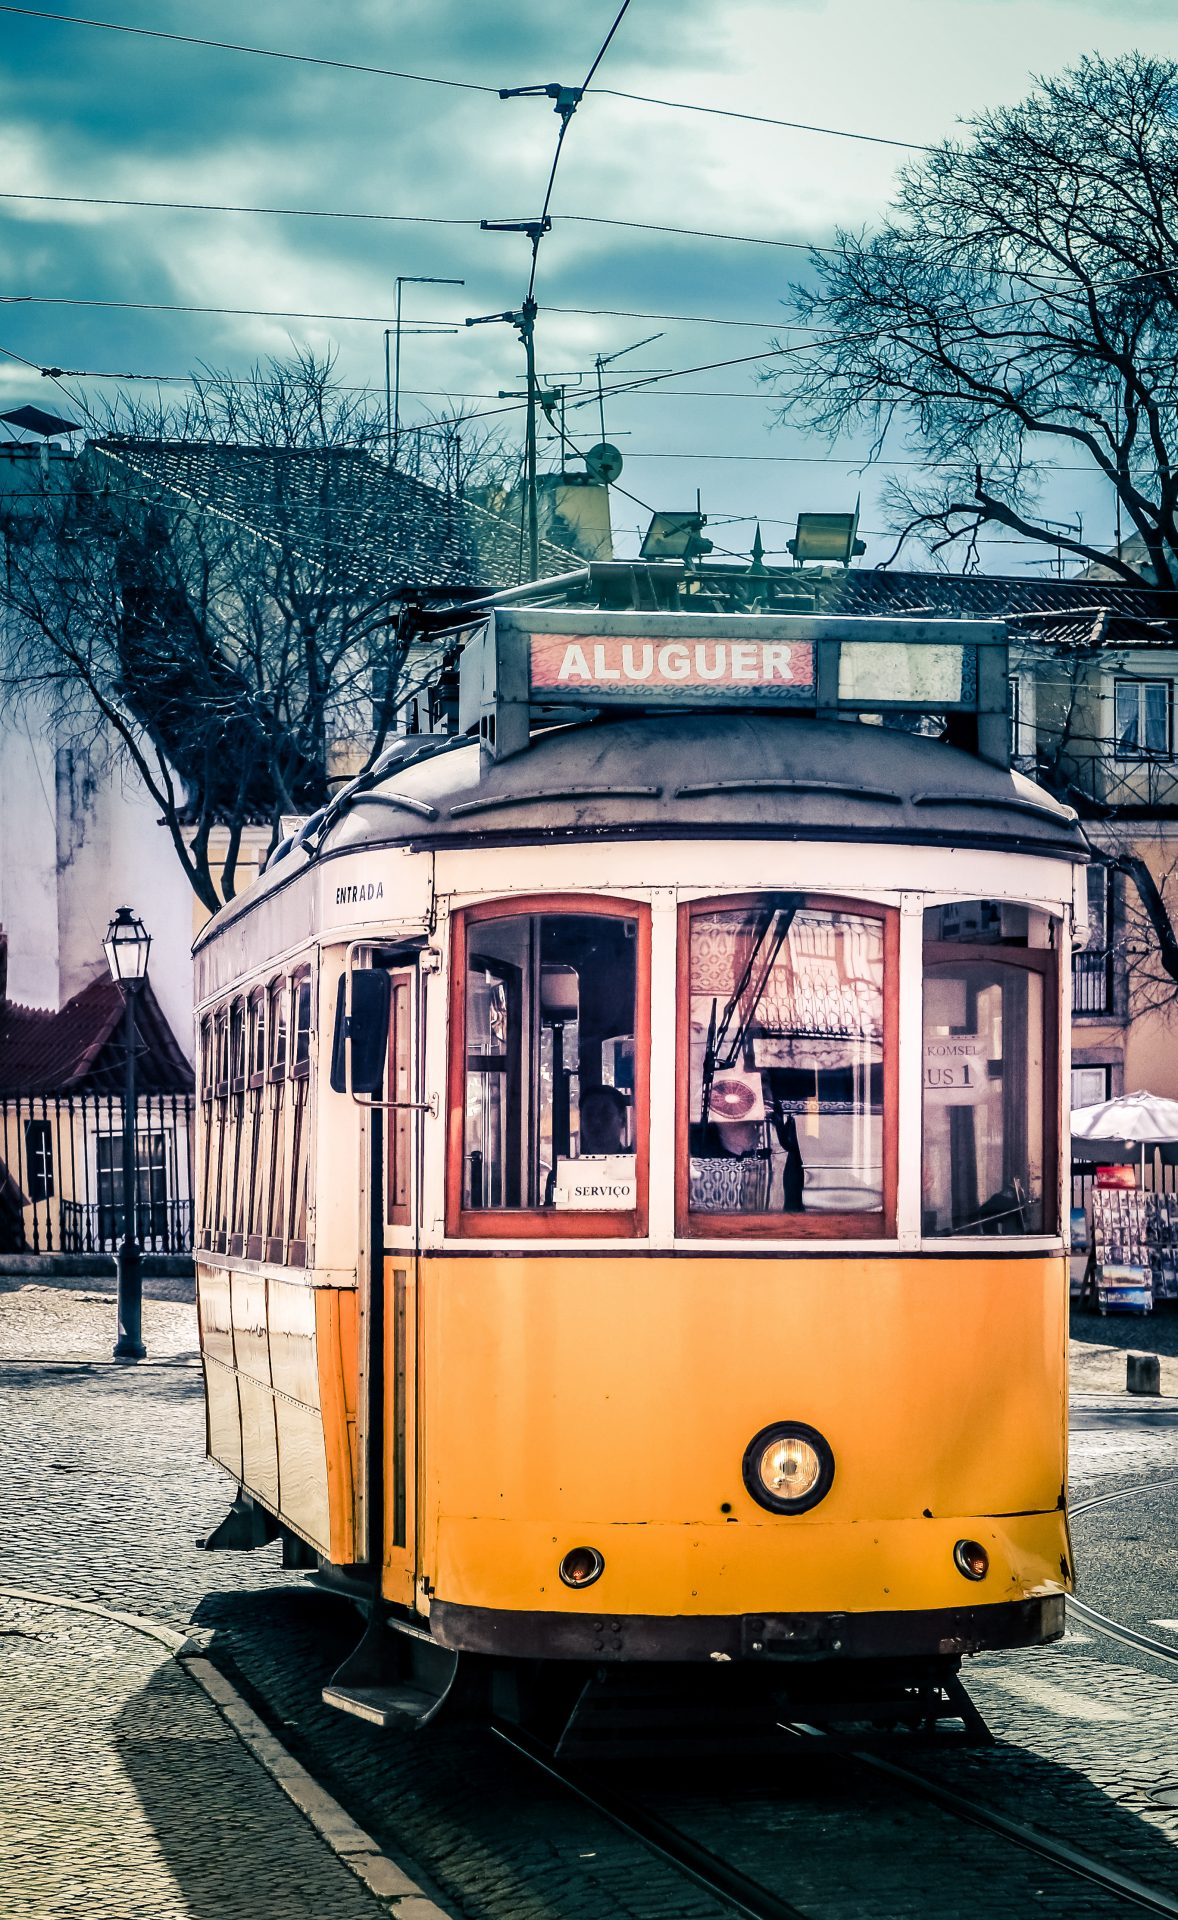 Historic Tram in Lisbon with dramatic sky